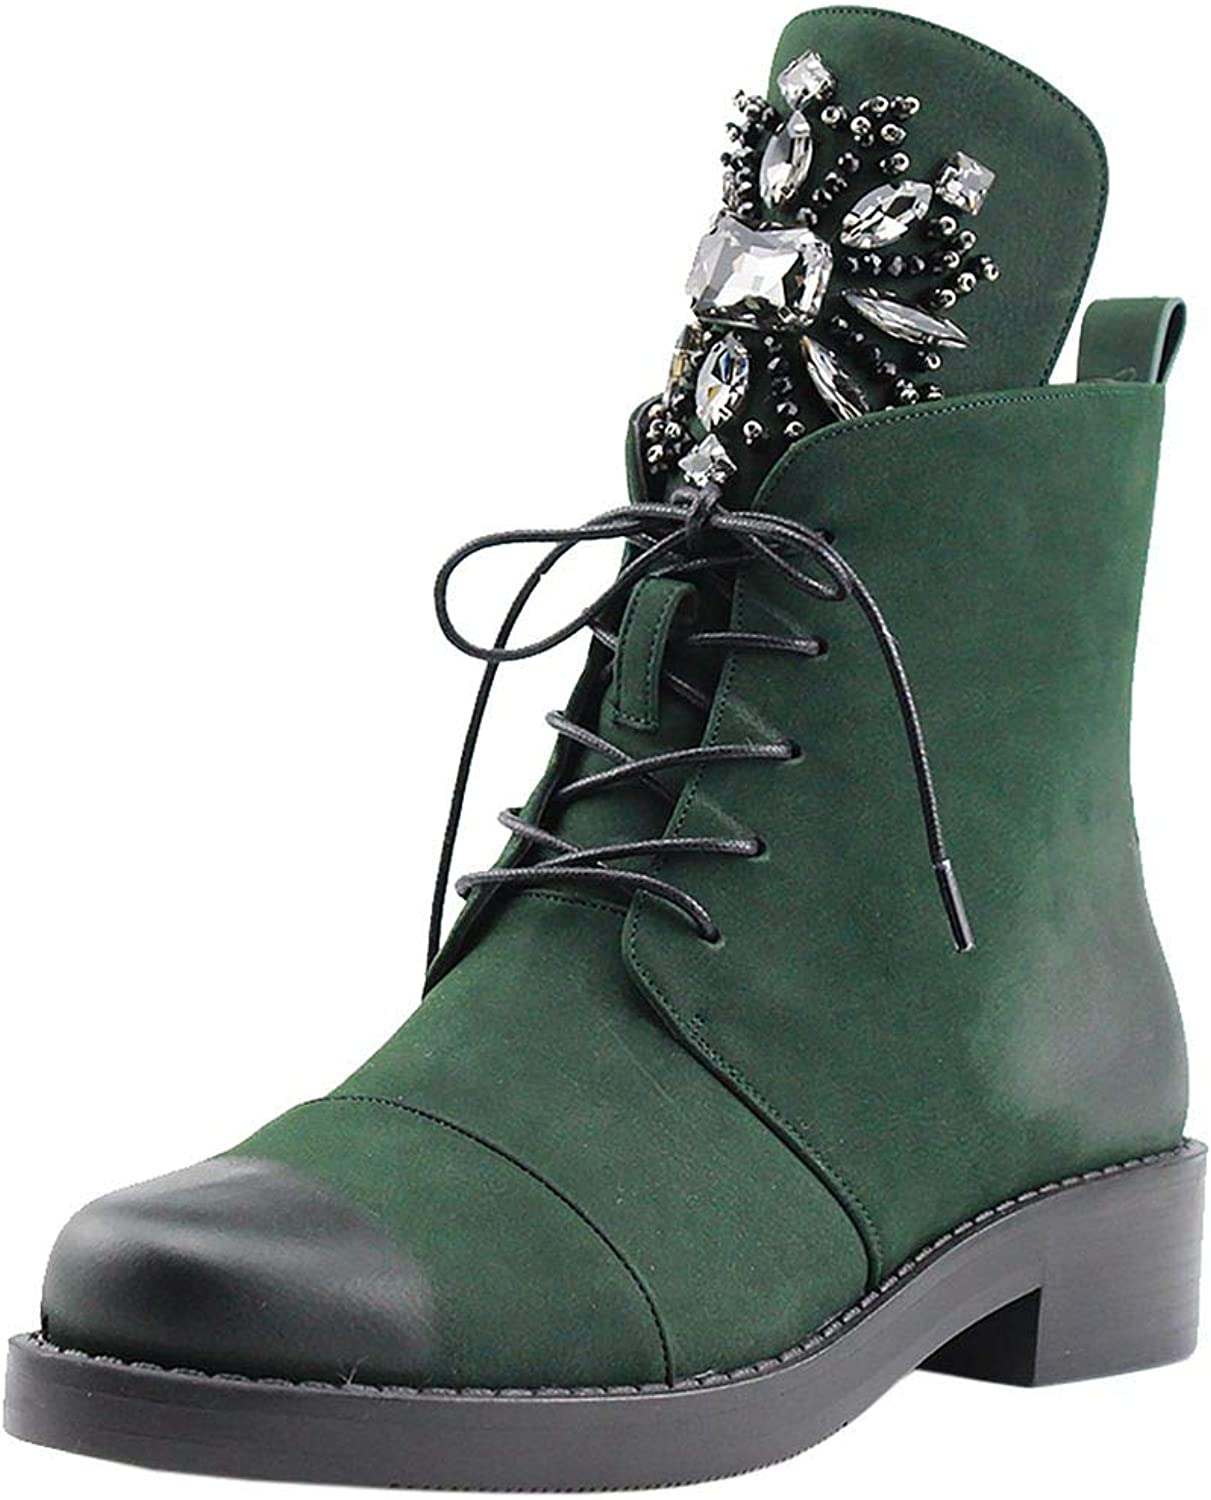 Kaloosh Womens Vegant Winter Boots Block Low Heels Retro Rhinestone Lace-up Platform Booties